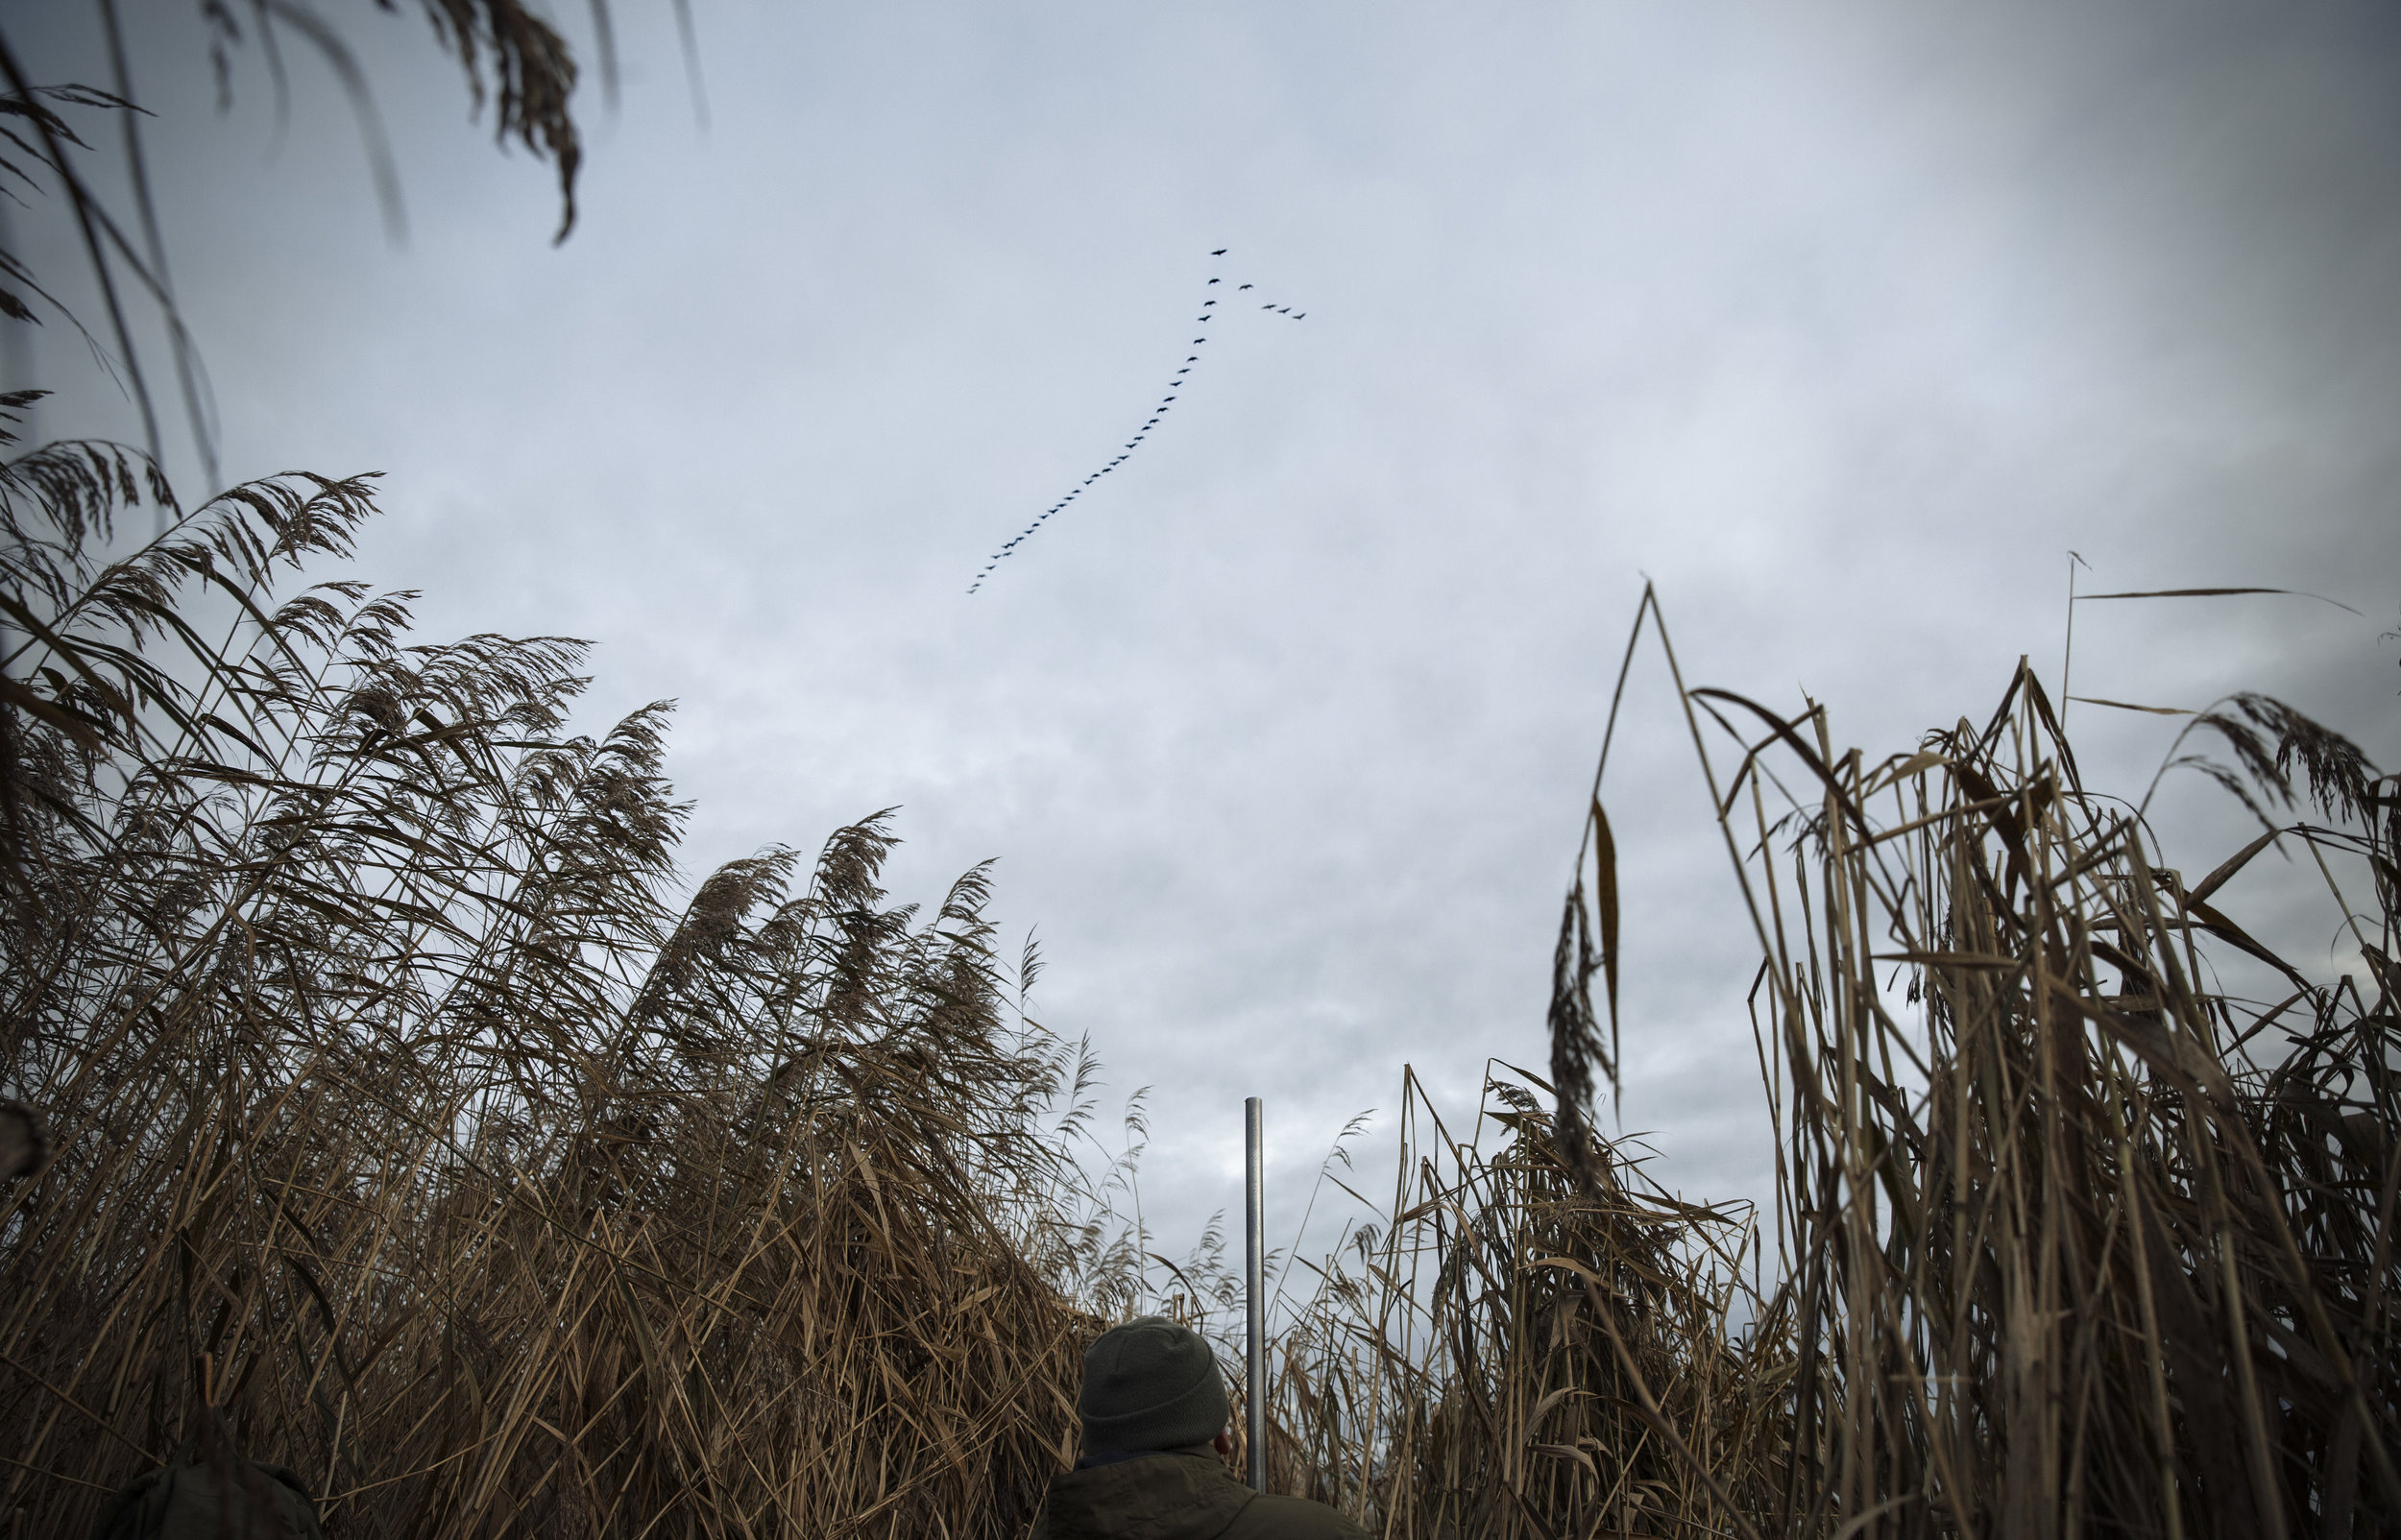 Wildfowling on the Humber and a Wild Goose Chase - Nature & Lifestyle Photography